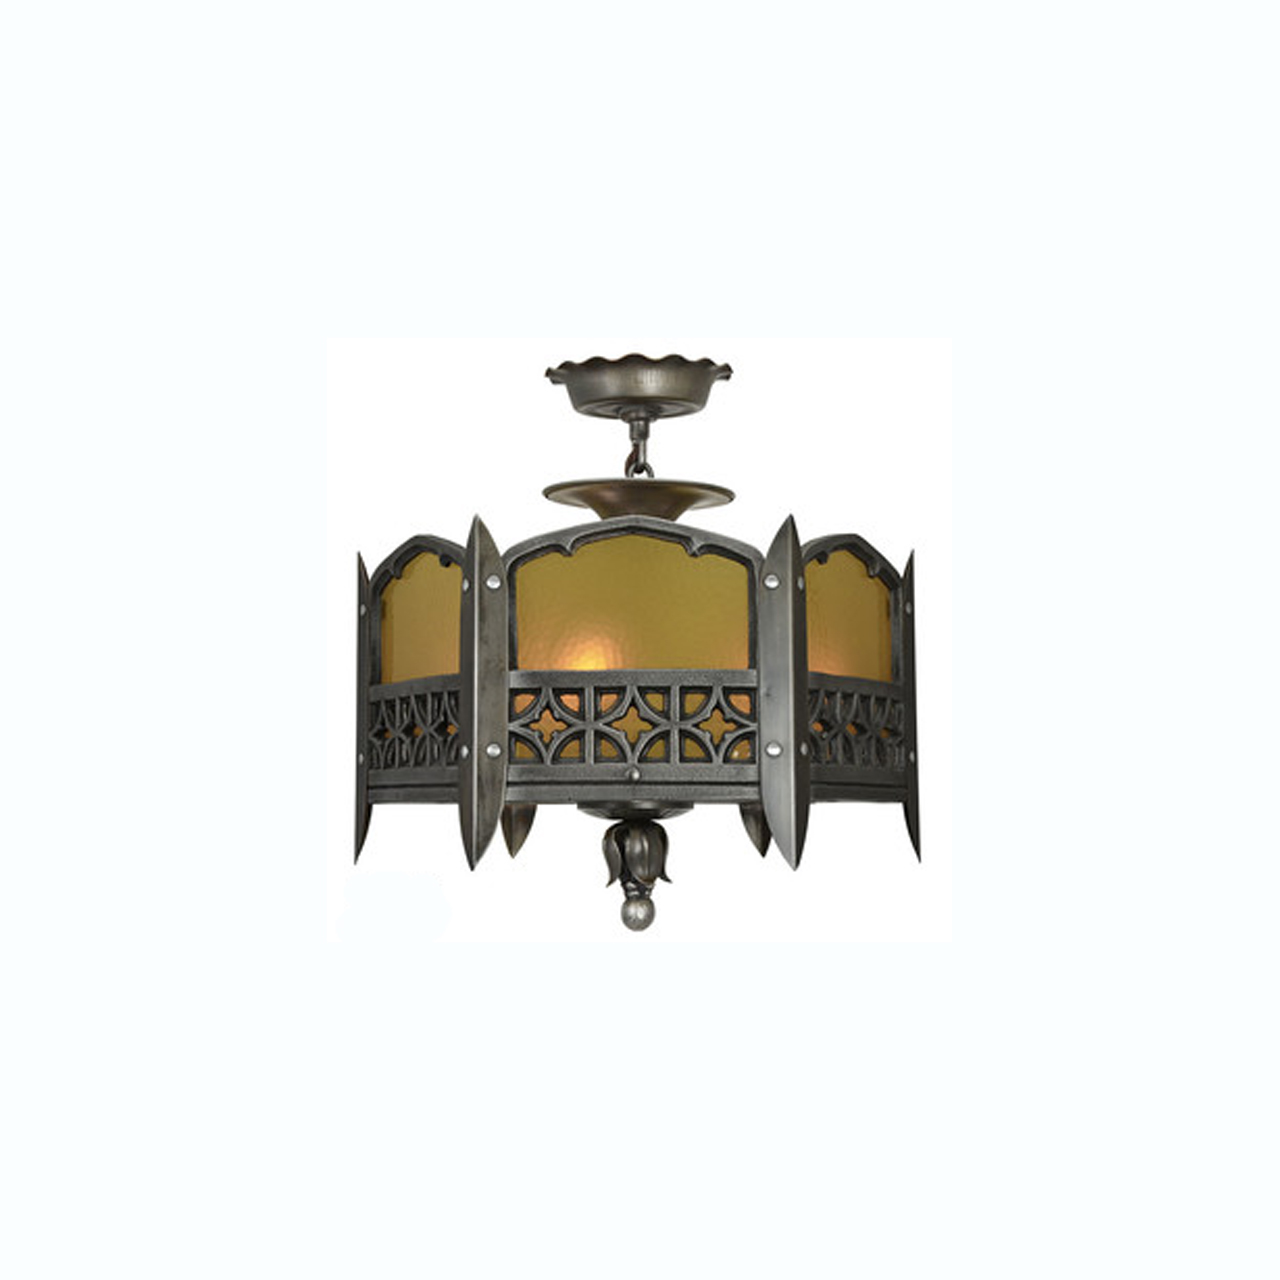 Gothic or arts and crafts style low or short ceiling chandelier gothic or arts and crafts style low or short ceiling chandelier light ant 321 for sale arubaitofo Choice Image